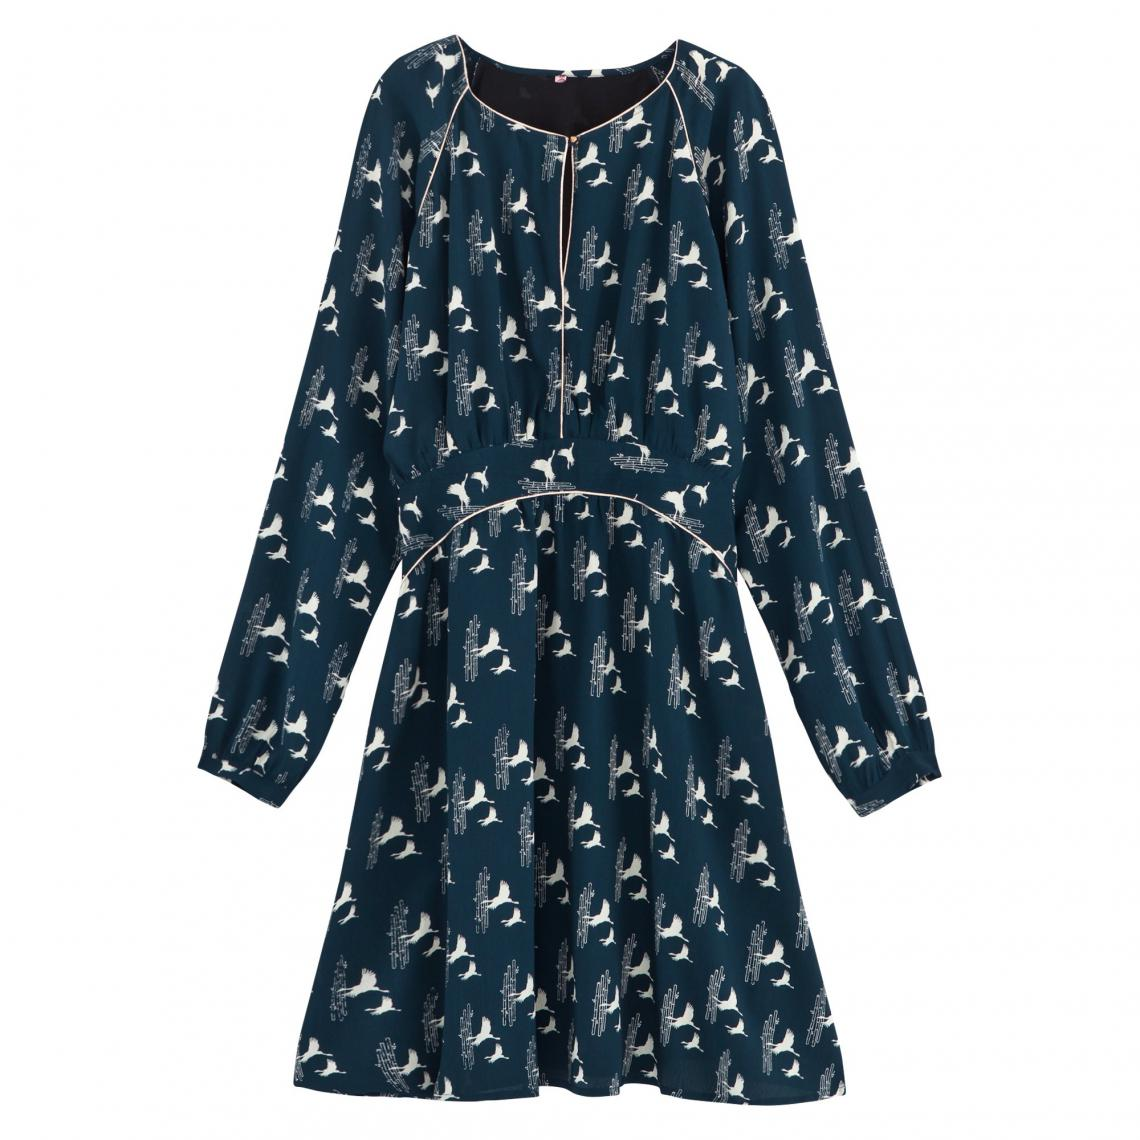 Robe fluide manches longues avec piping femme 3 Suisses Collection -  Bicolore 3 Suisses Collection 32adc5ab620c